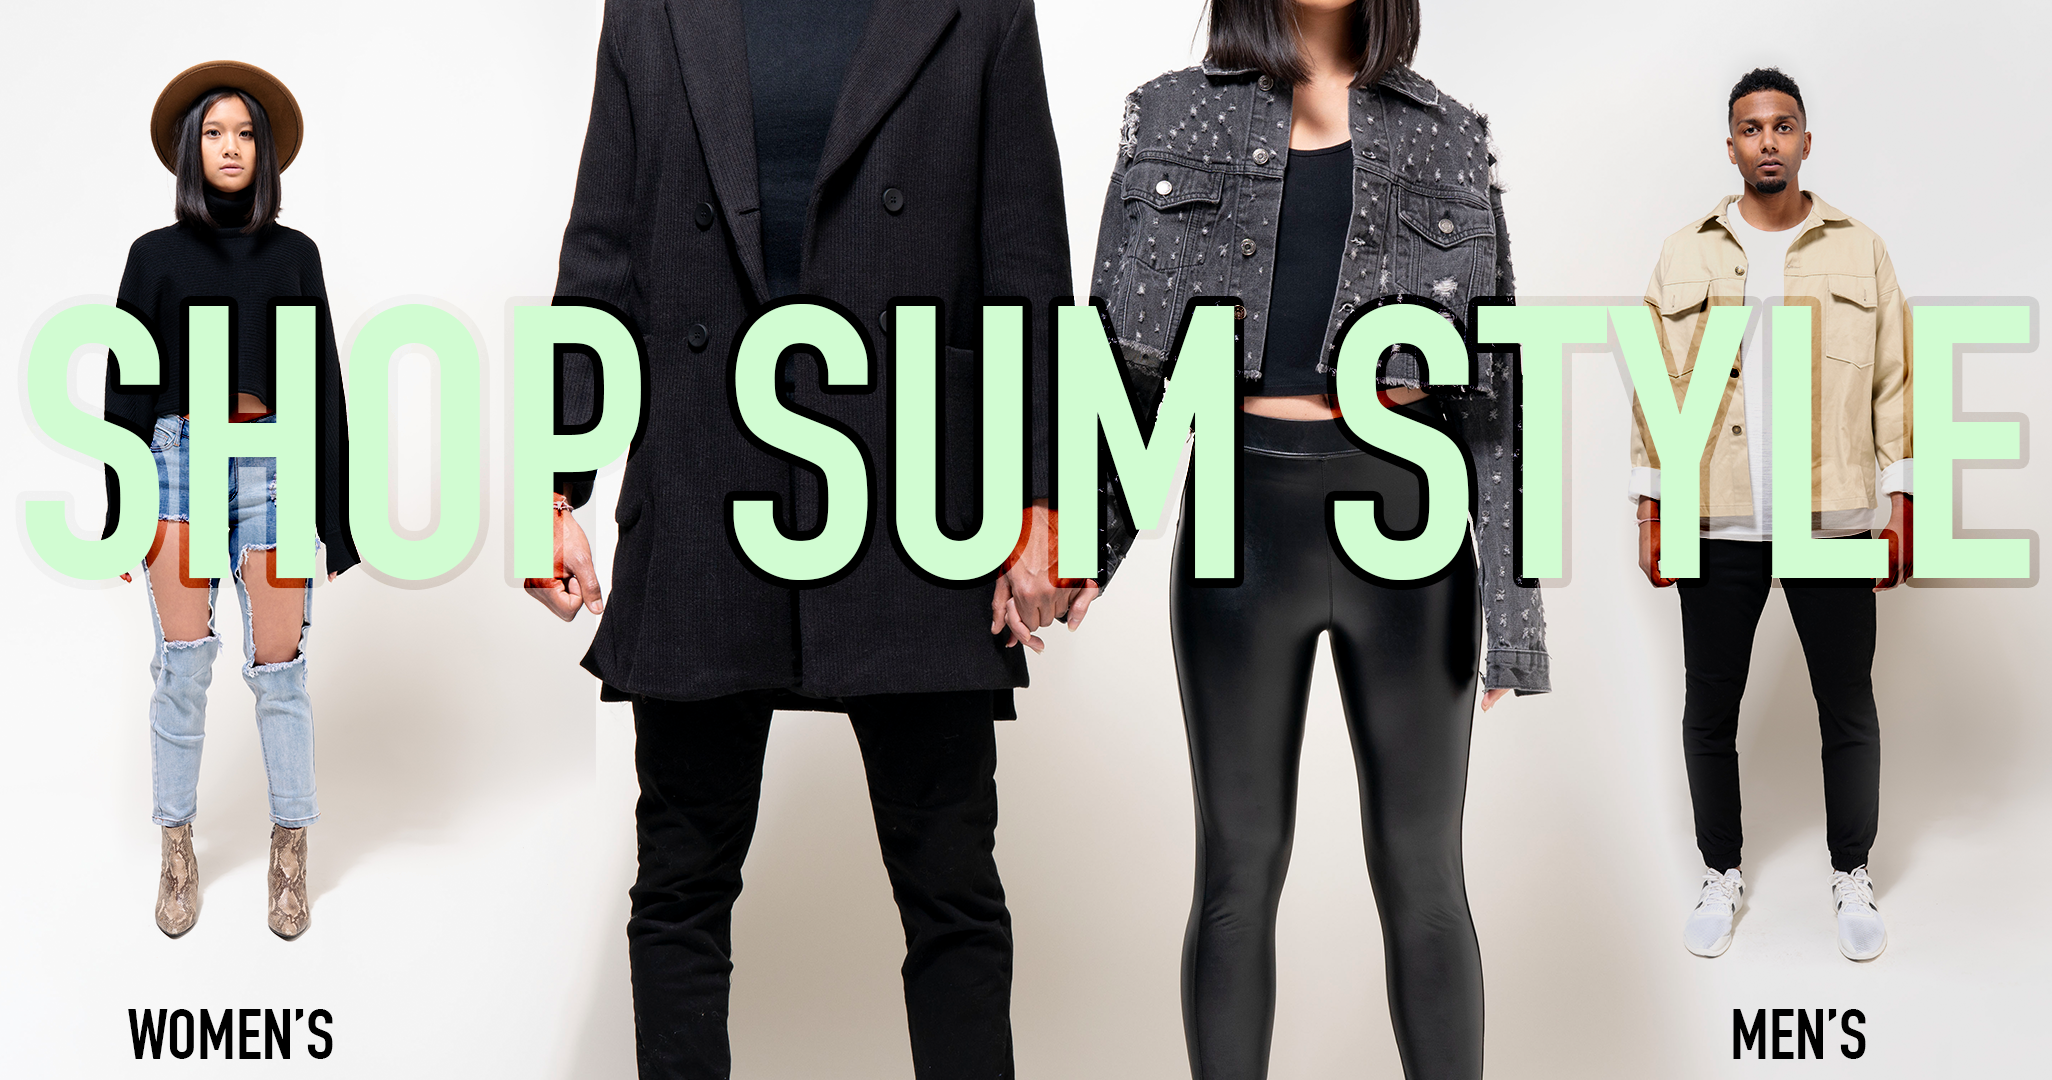 SUM IT UP - The new Ecommerce feature for convenient, private, free personal styling.